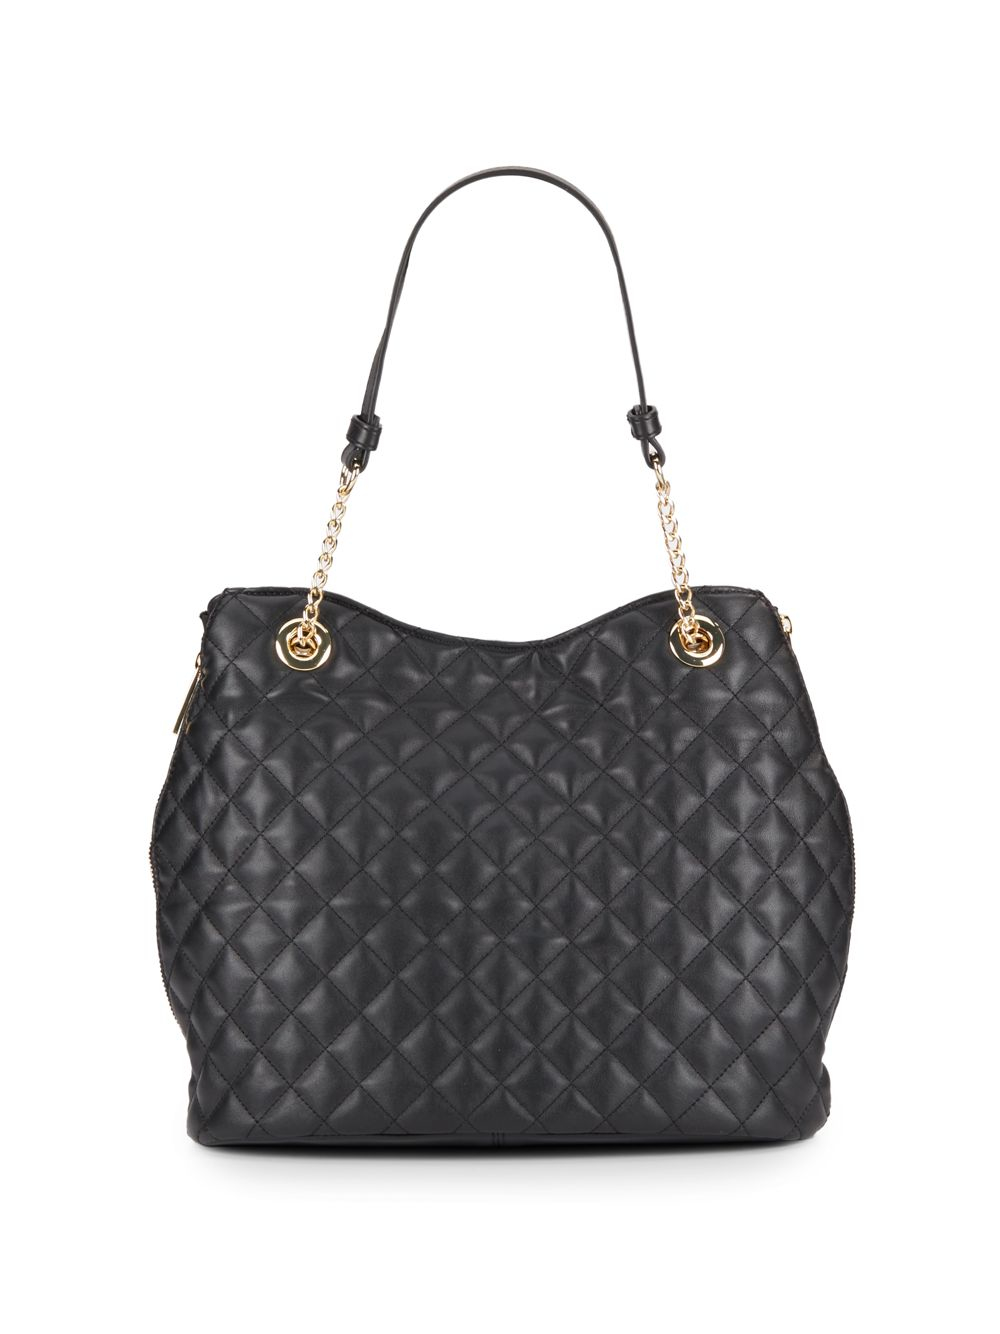 Vince Camuto Leather Chain Detailed Tote Bag In Black Lyst